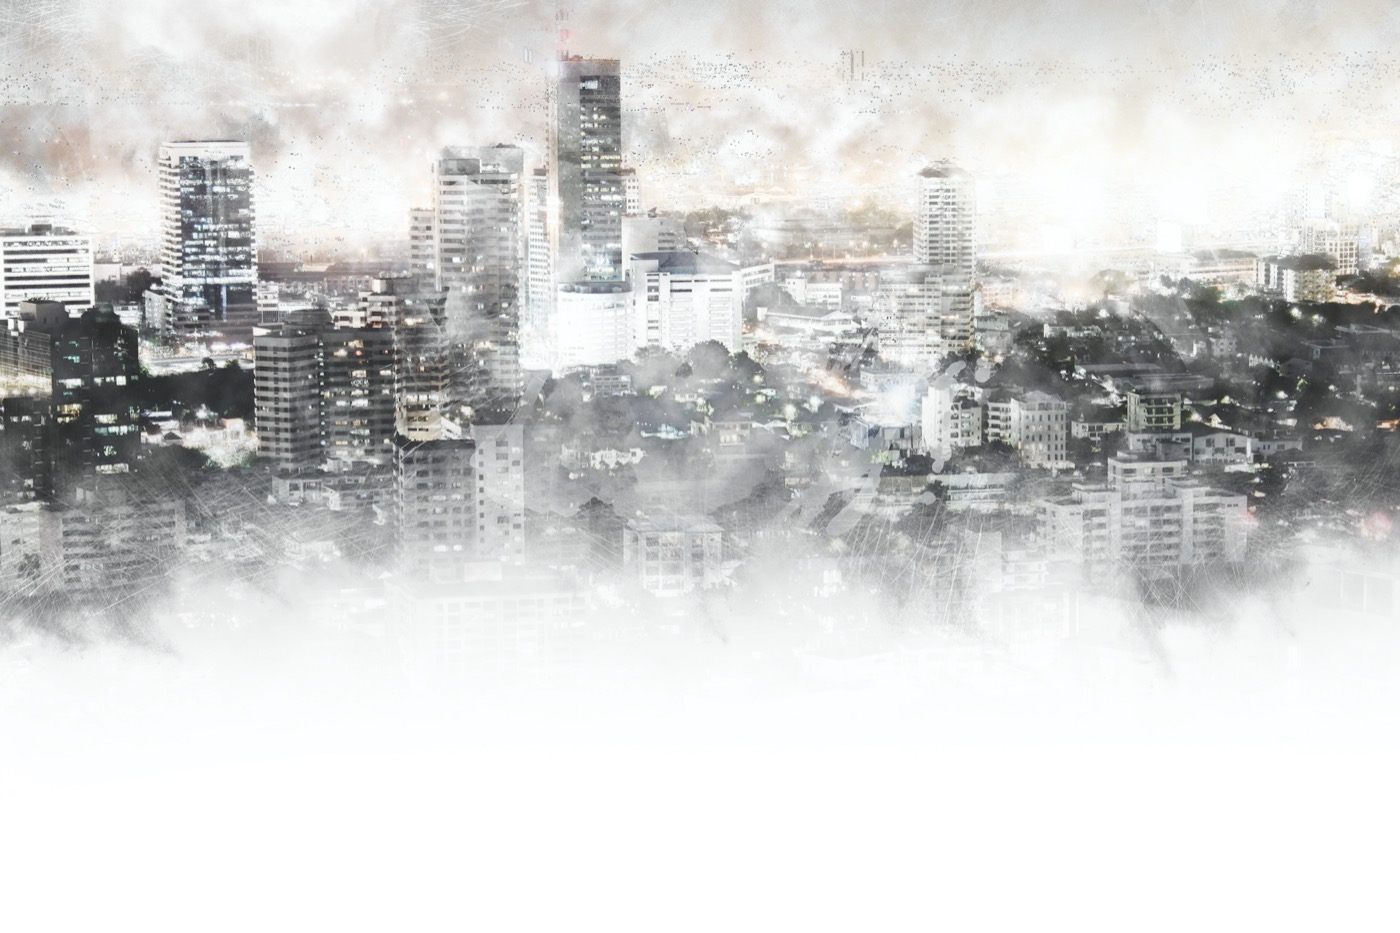 an abstract painting of tall skyscrapers shrouded by pollution